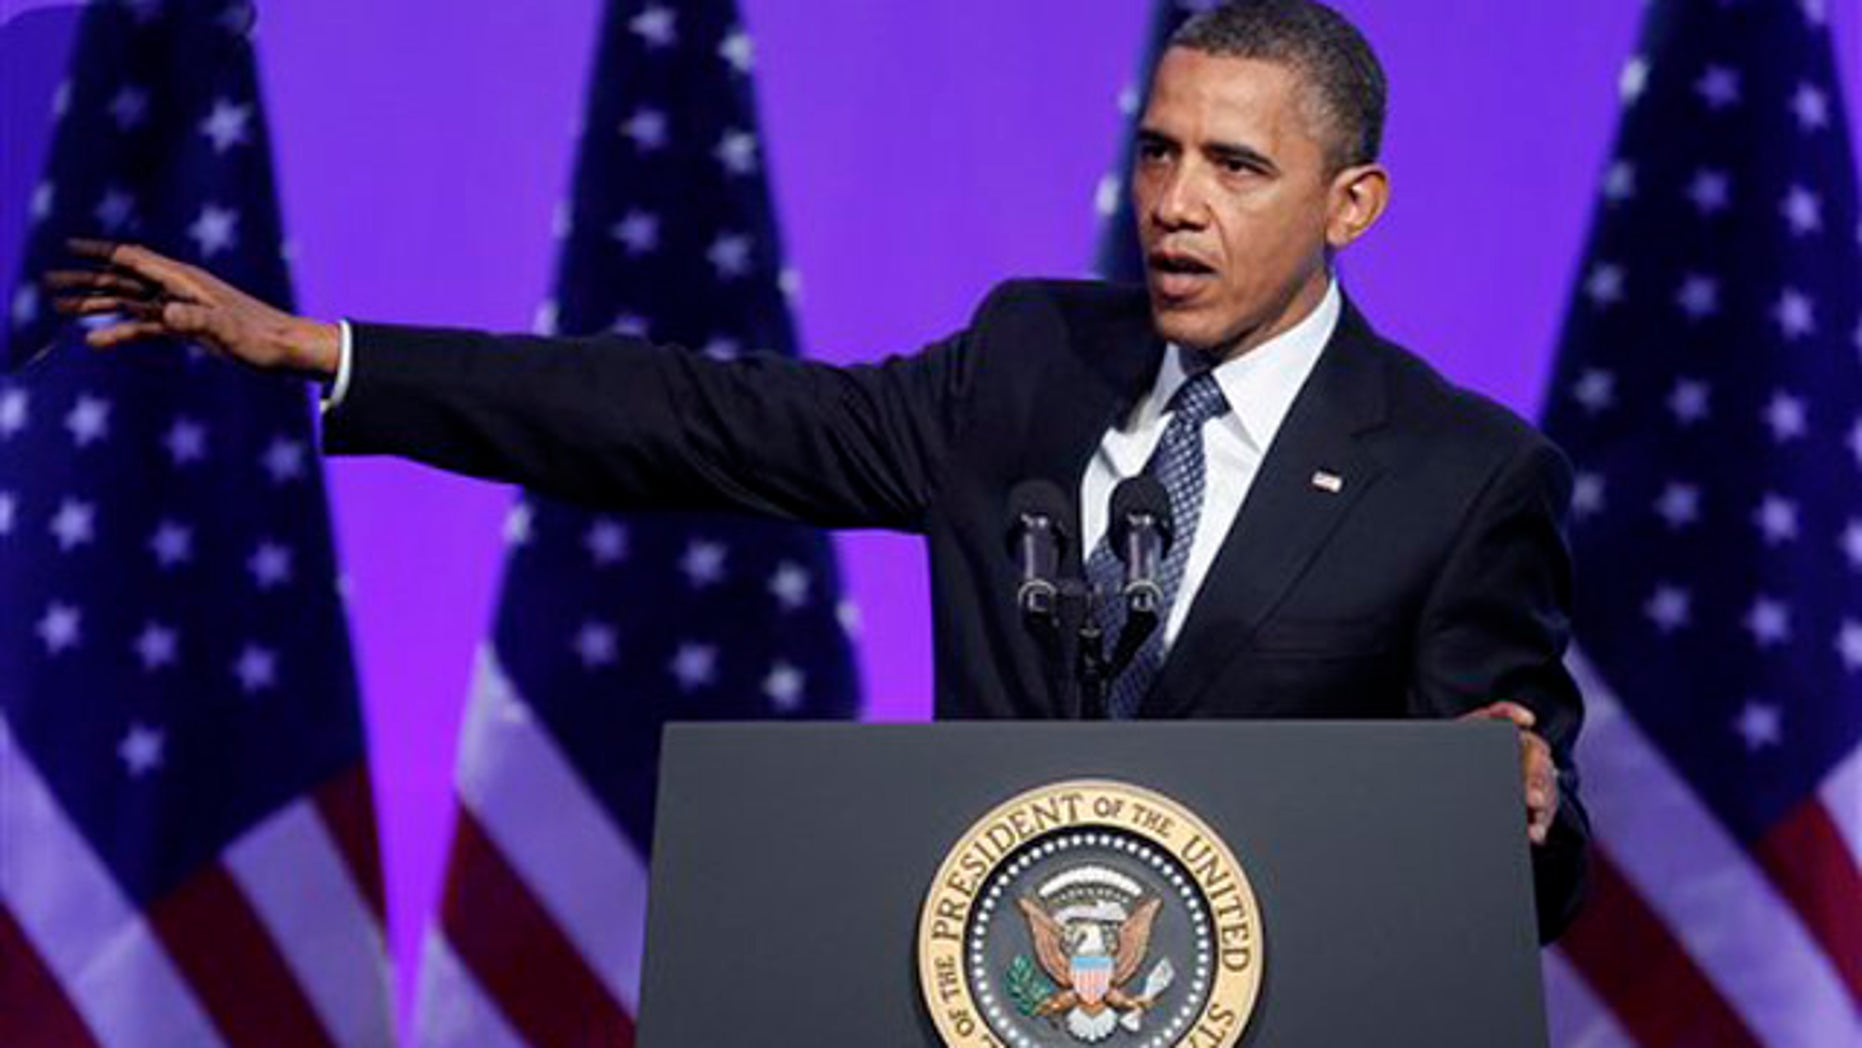 April 3, 2012: President Obama speaks at an Associated Press luncheon in Washington.